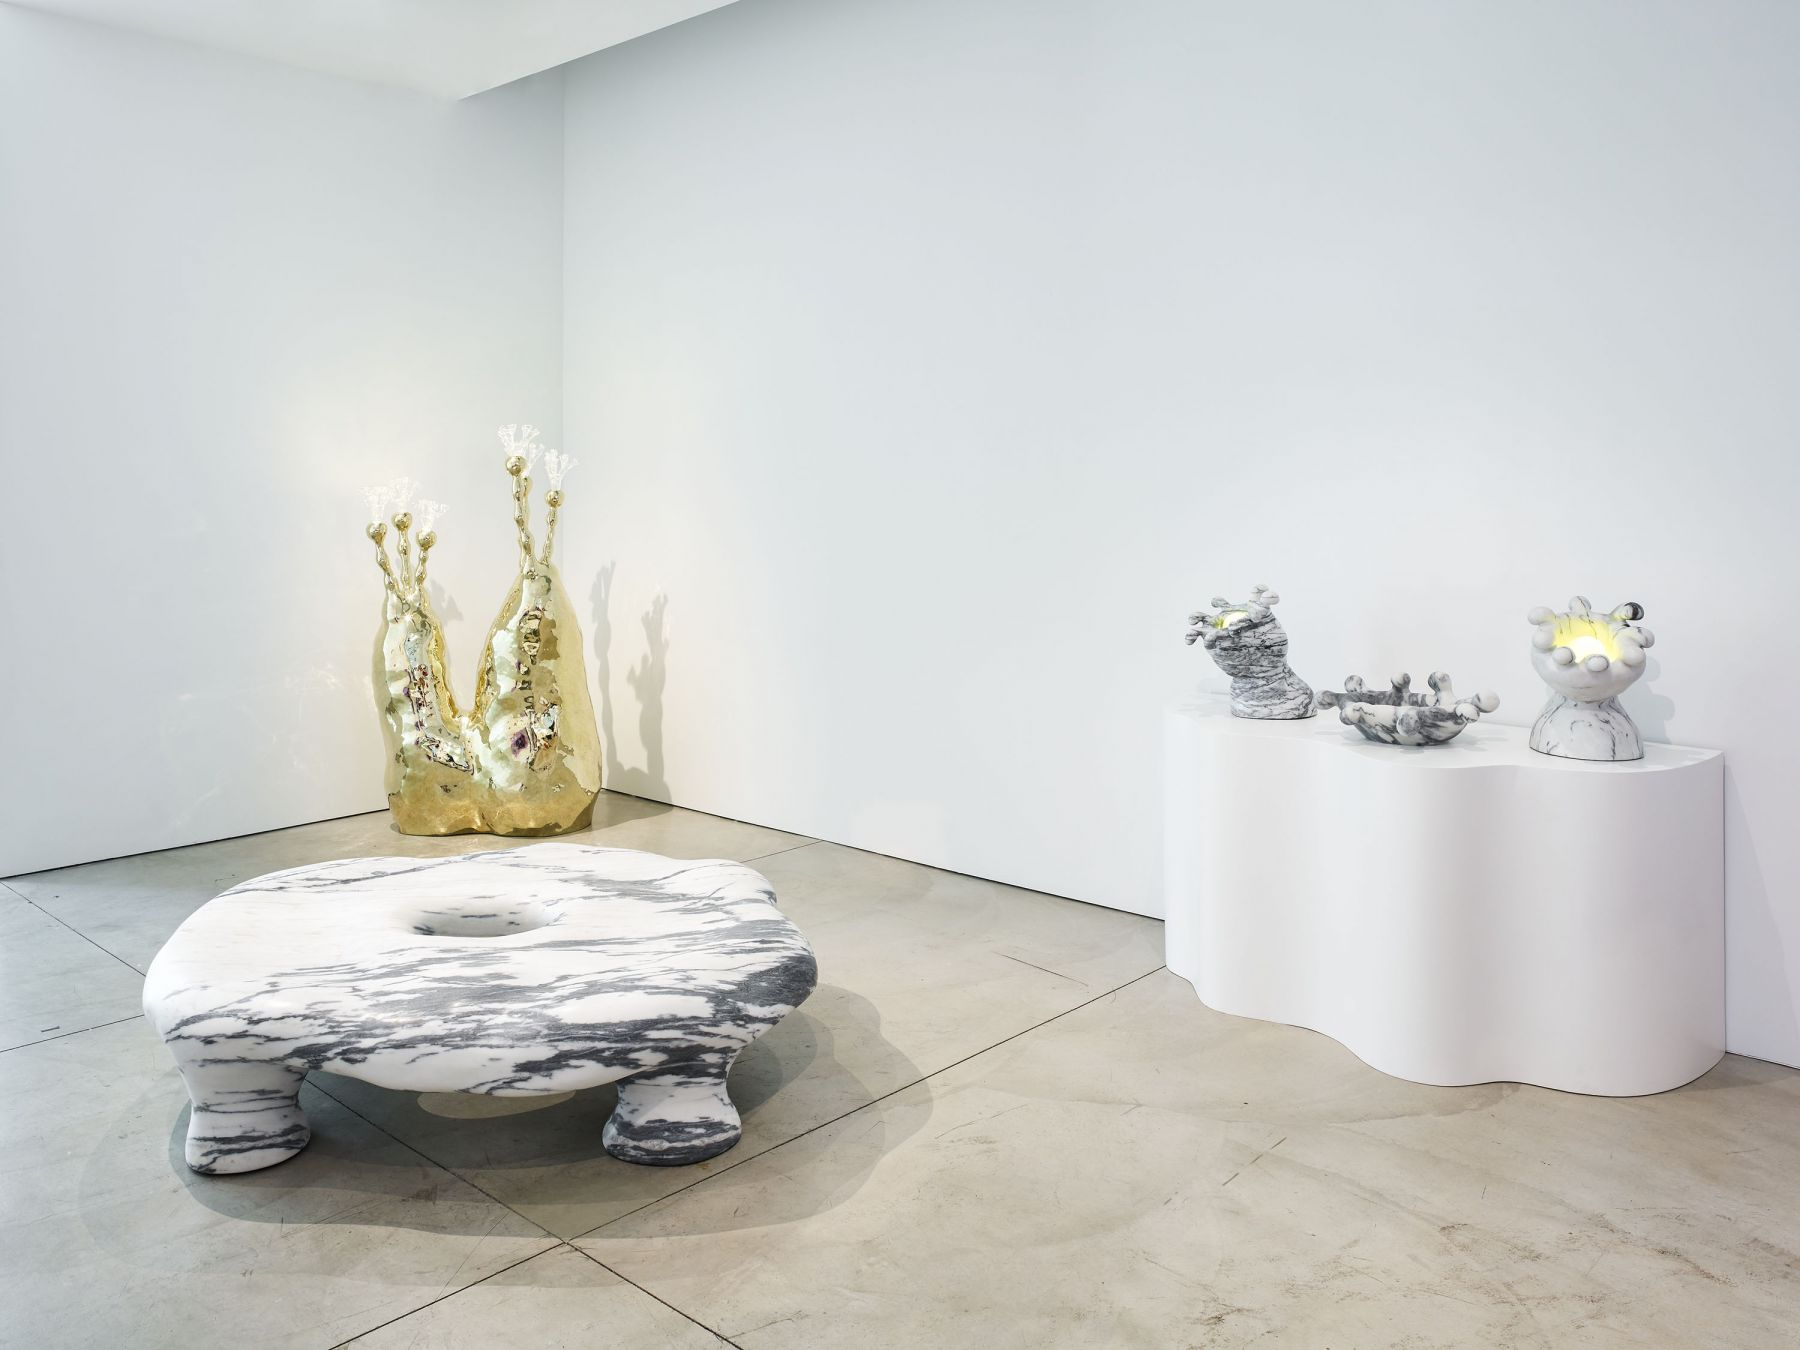 Stonely Planet (Installation View)